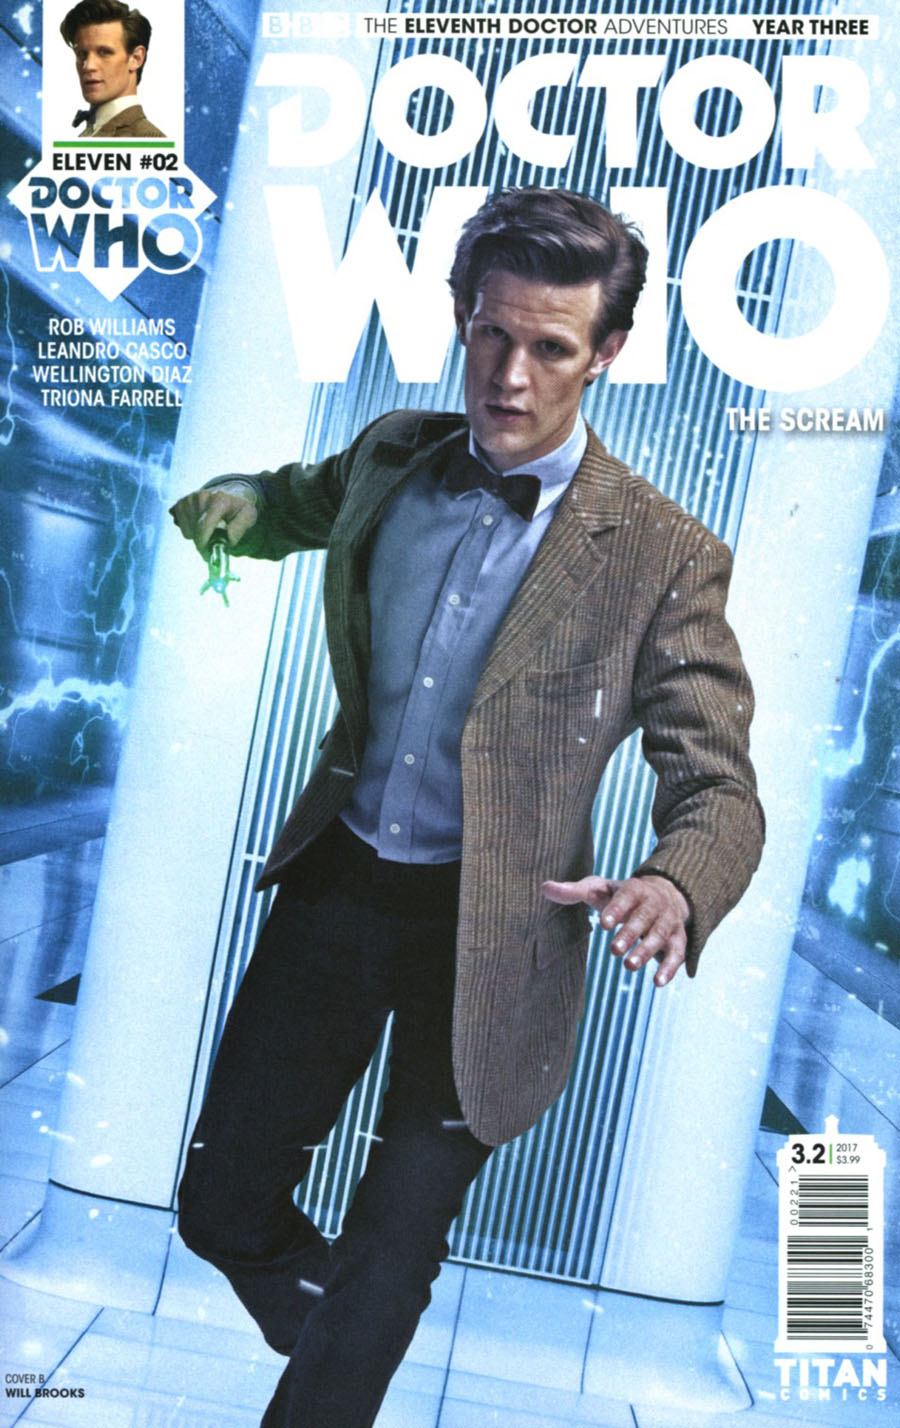 Doctor Who 11th Doctor Year Three #2 Cover B Variant Photo Cover